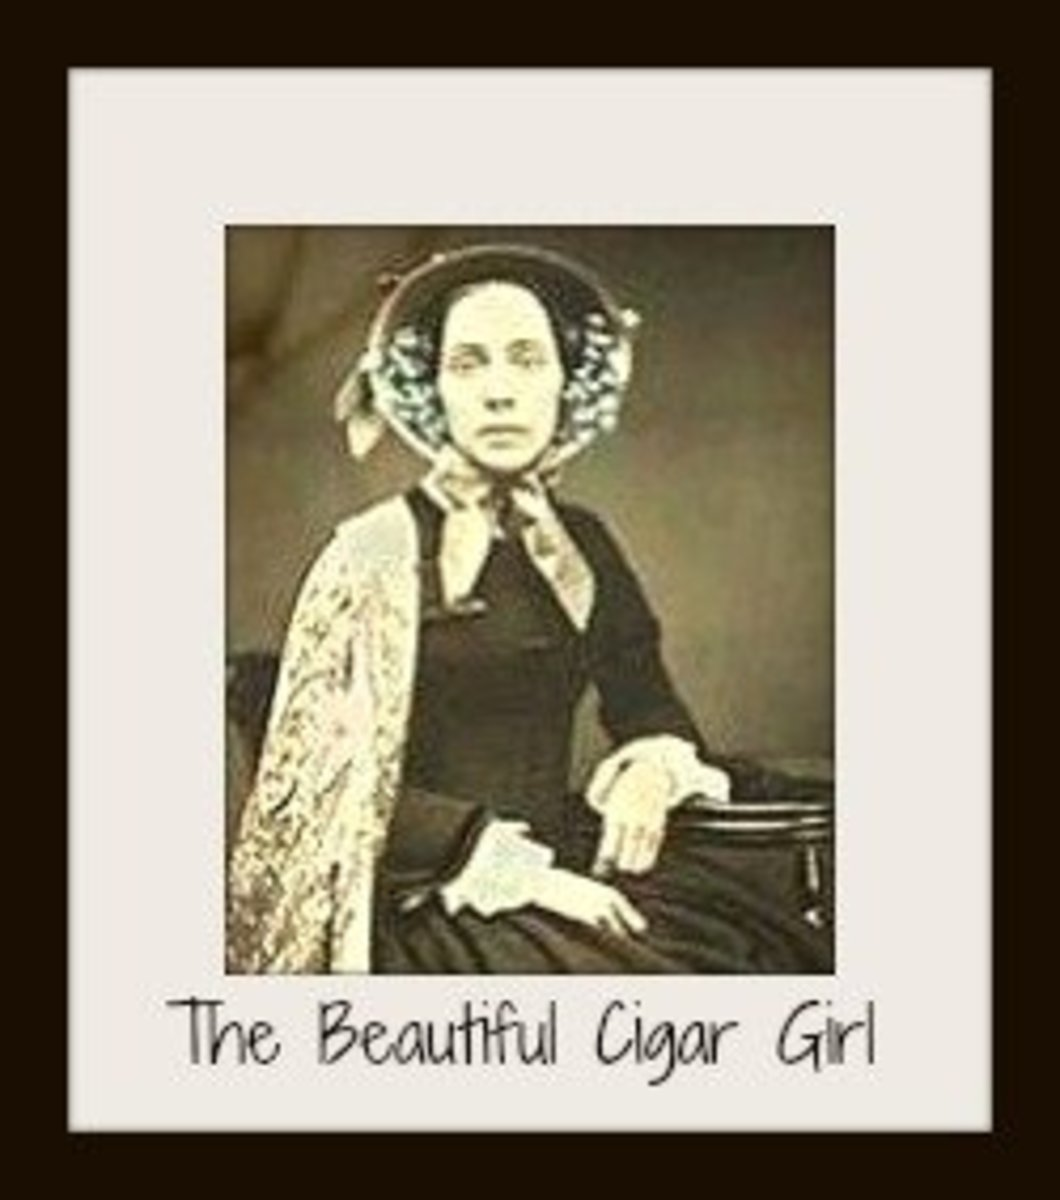 Death of the Beautiful Cigar Girl: Was Edgar Allan Poe the Murderer?